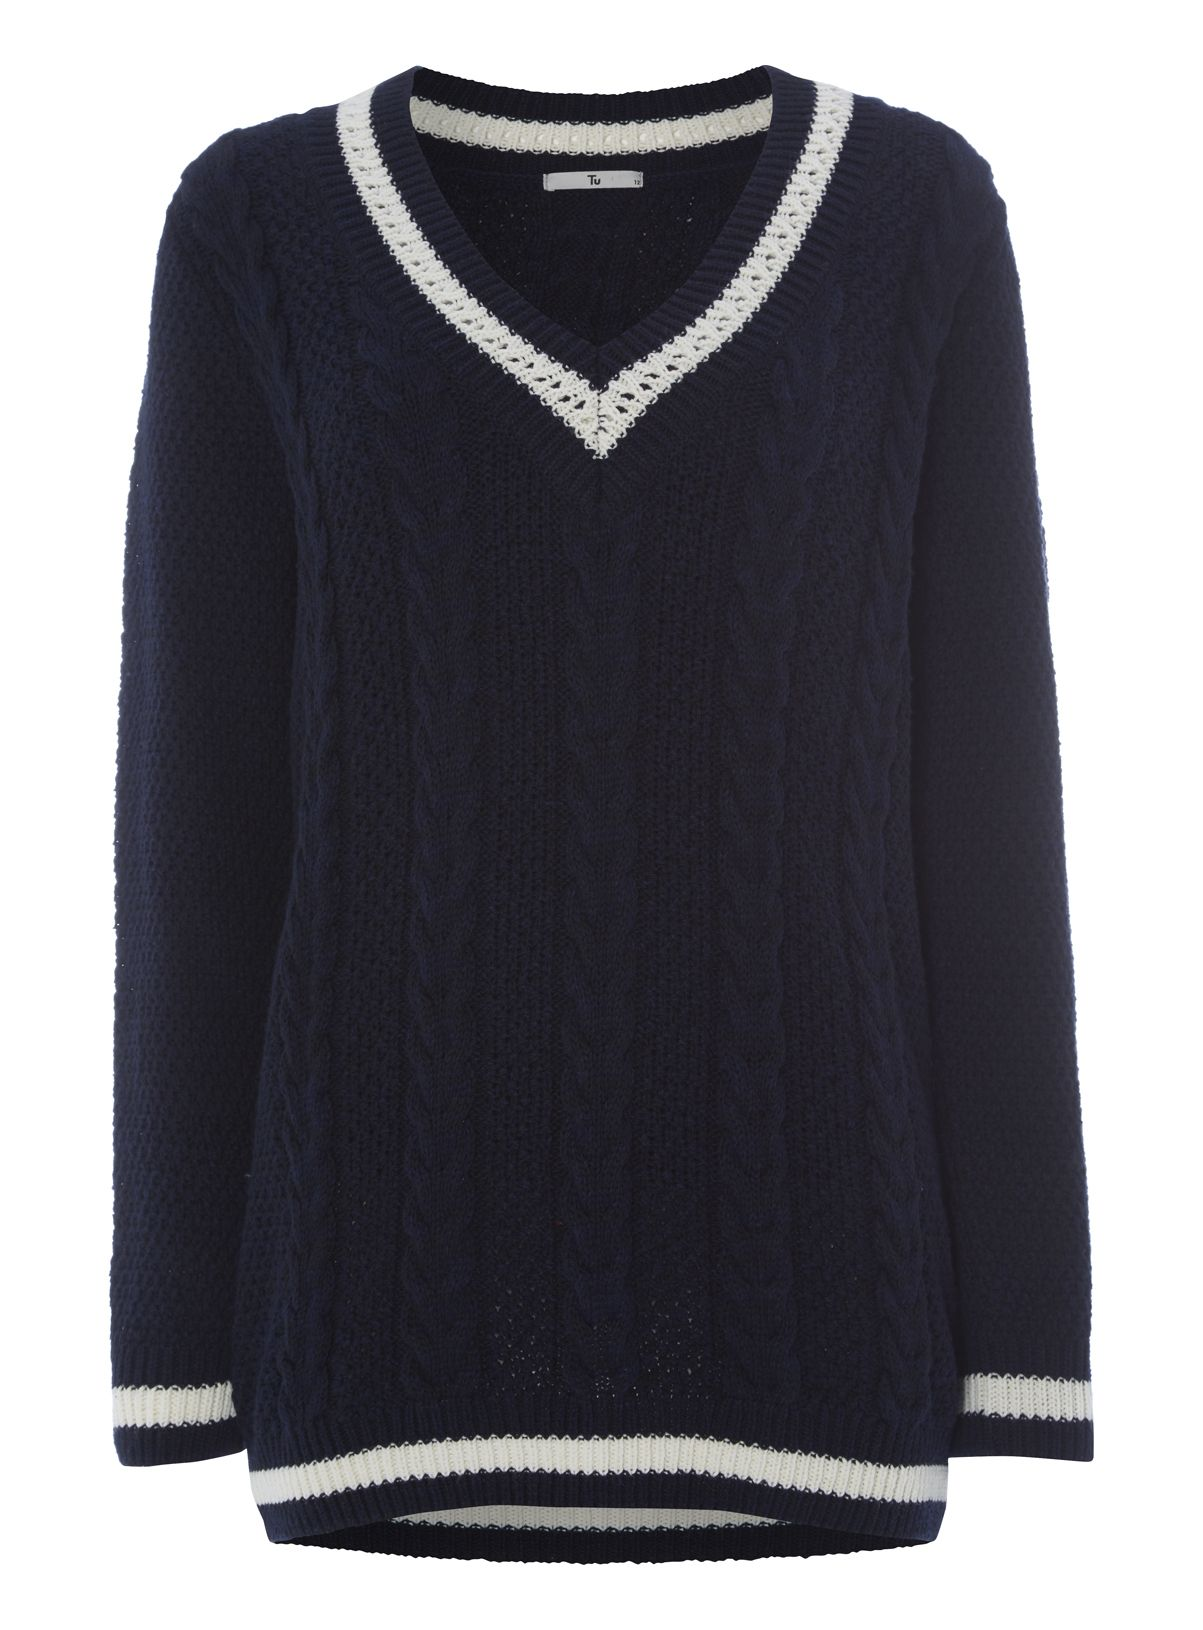 Womens Navy Cable Knit Cricket Jumper | Tu clothing | Handbags and ...